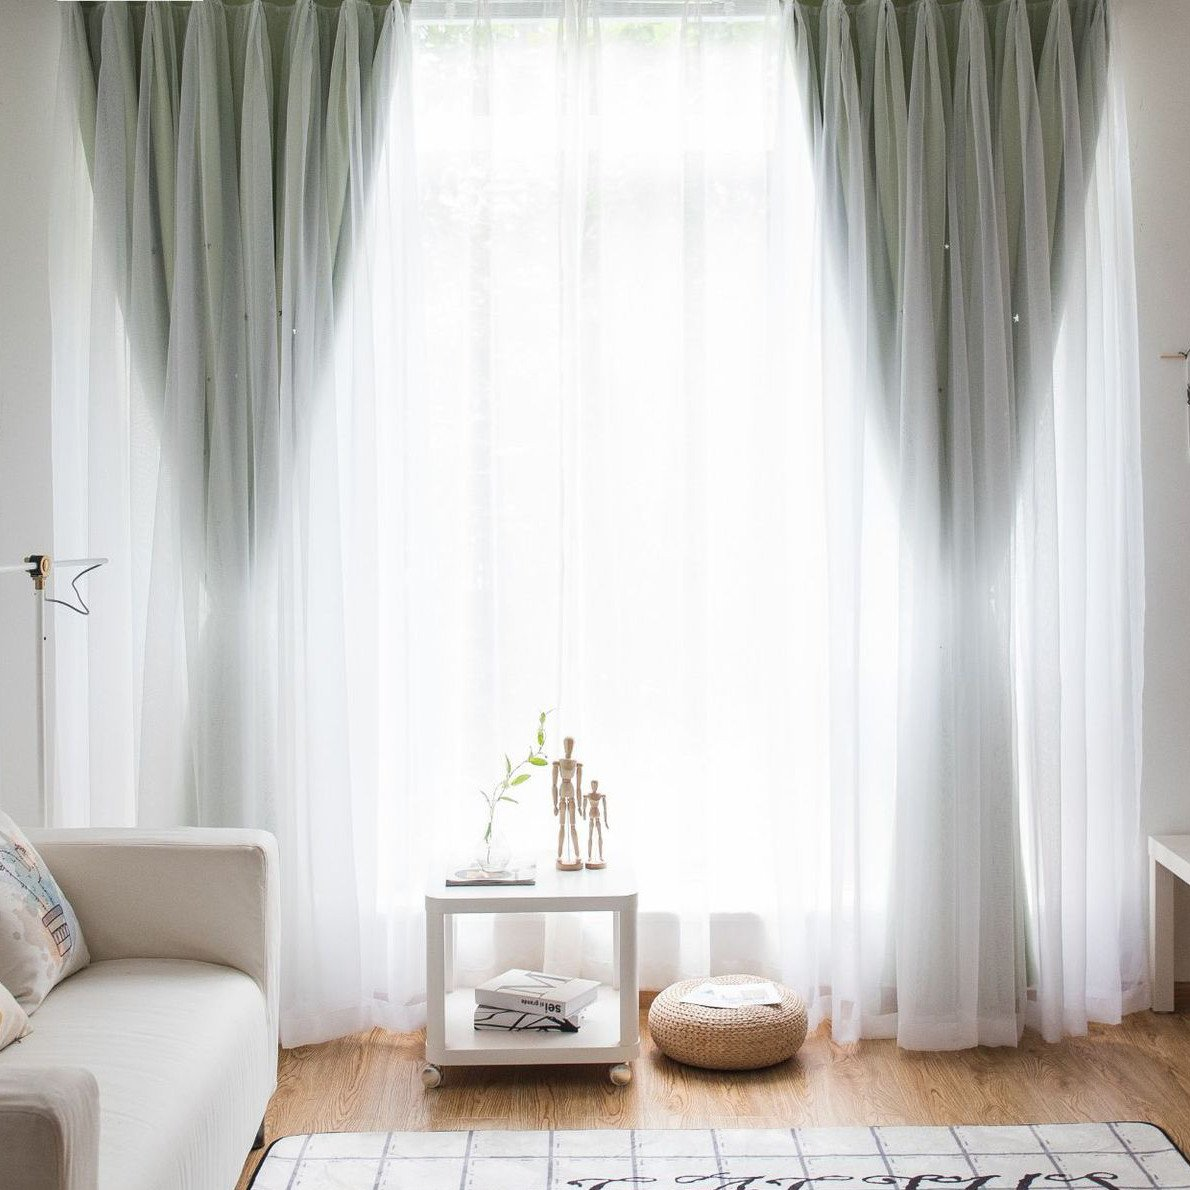 Peach Curtains for Bedroom Fresh Child Ethnic Tall Skirting Window order Bay Window Two Pieces Group Cheap Short Two Leaves Bedroom Horse Mackerel Ann One Piece Modishness Of Two